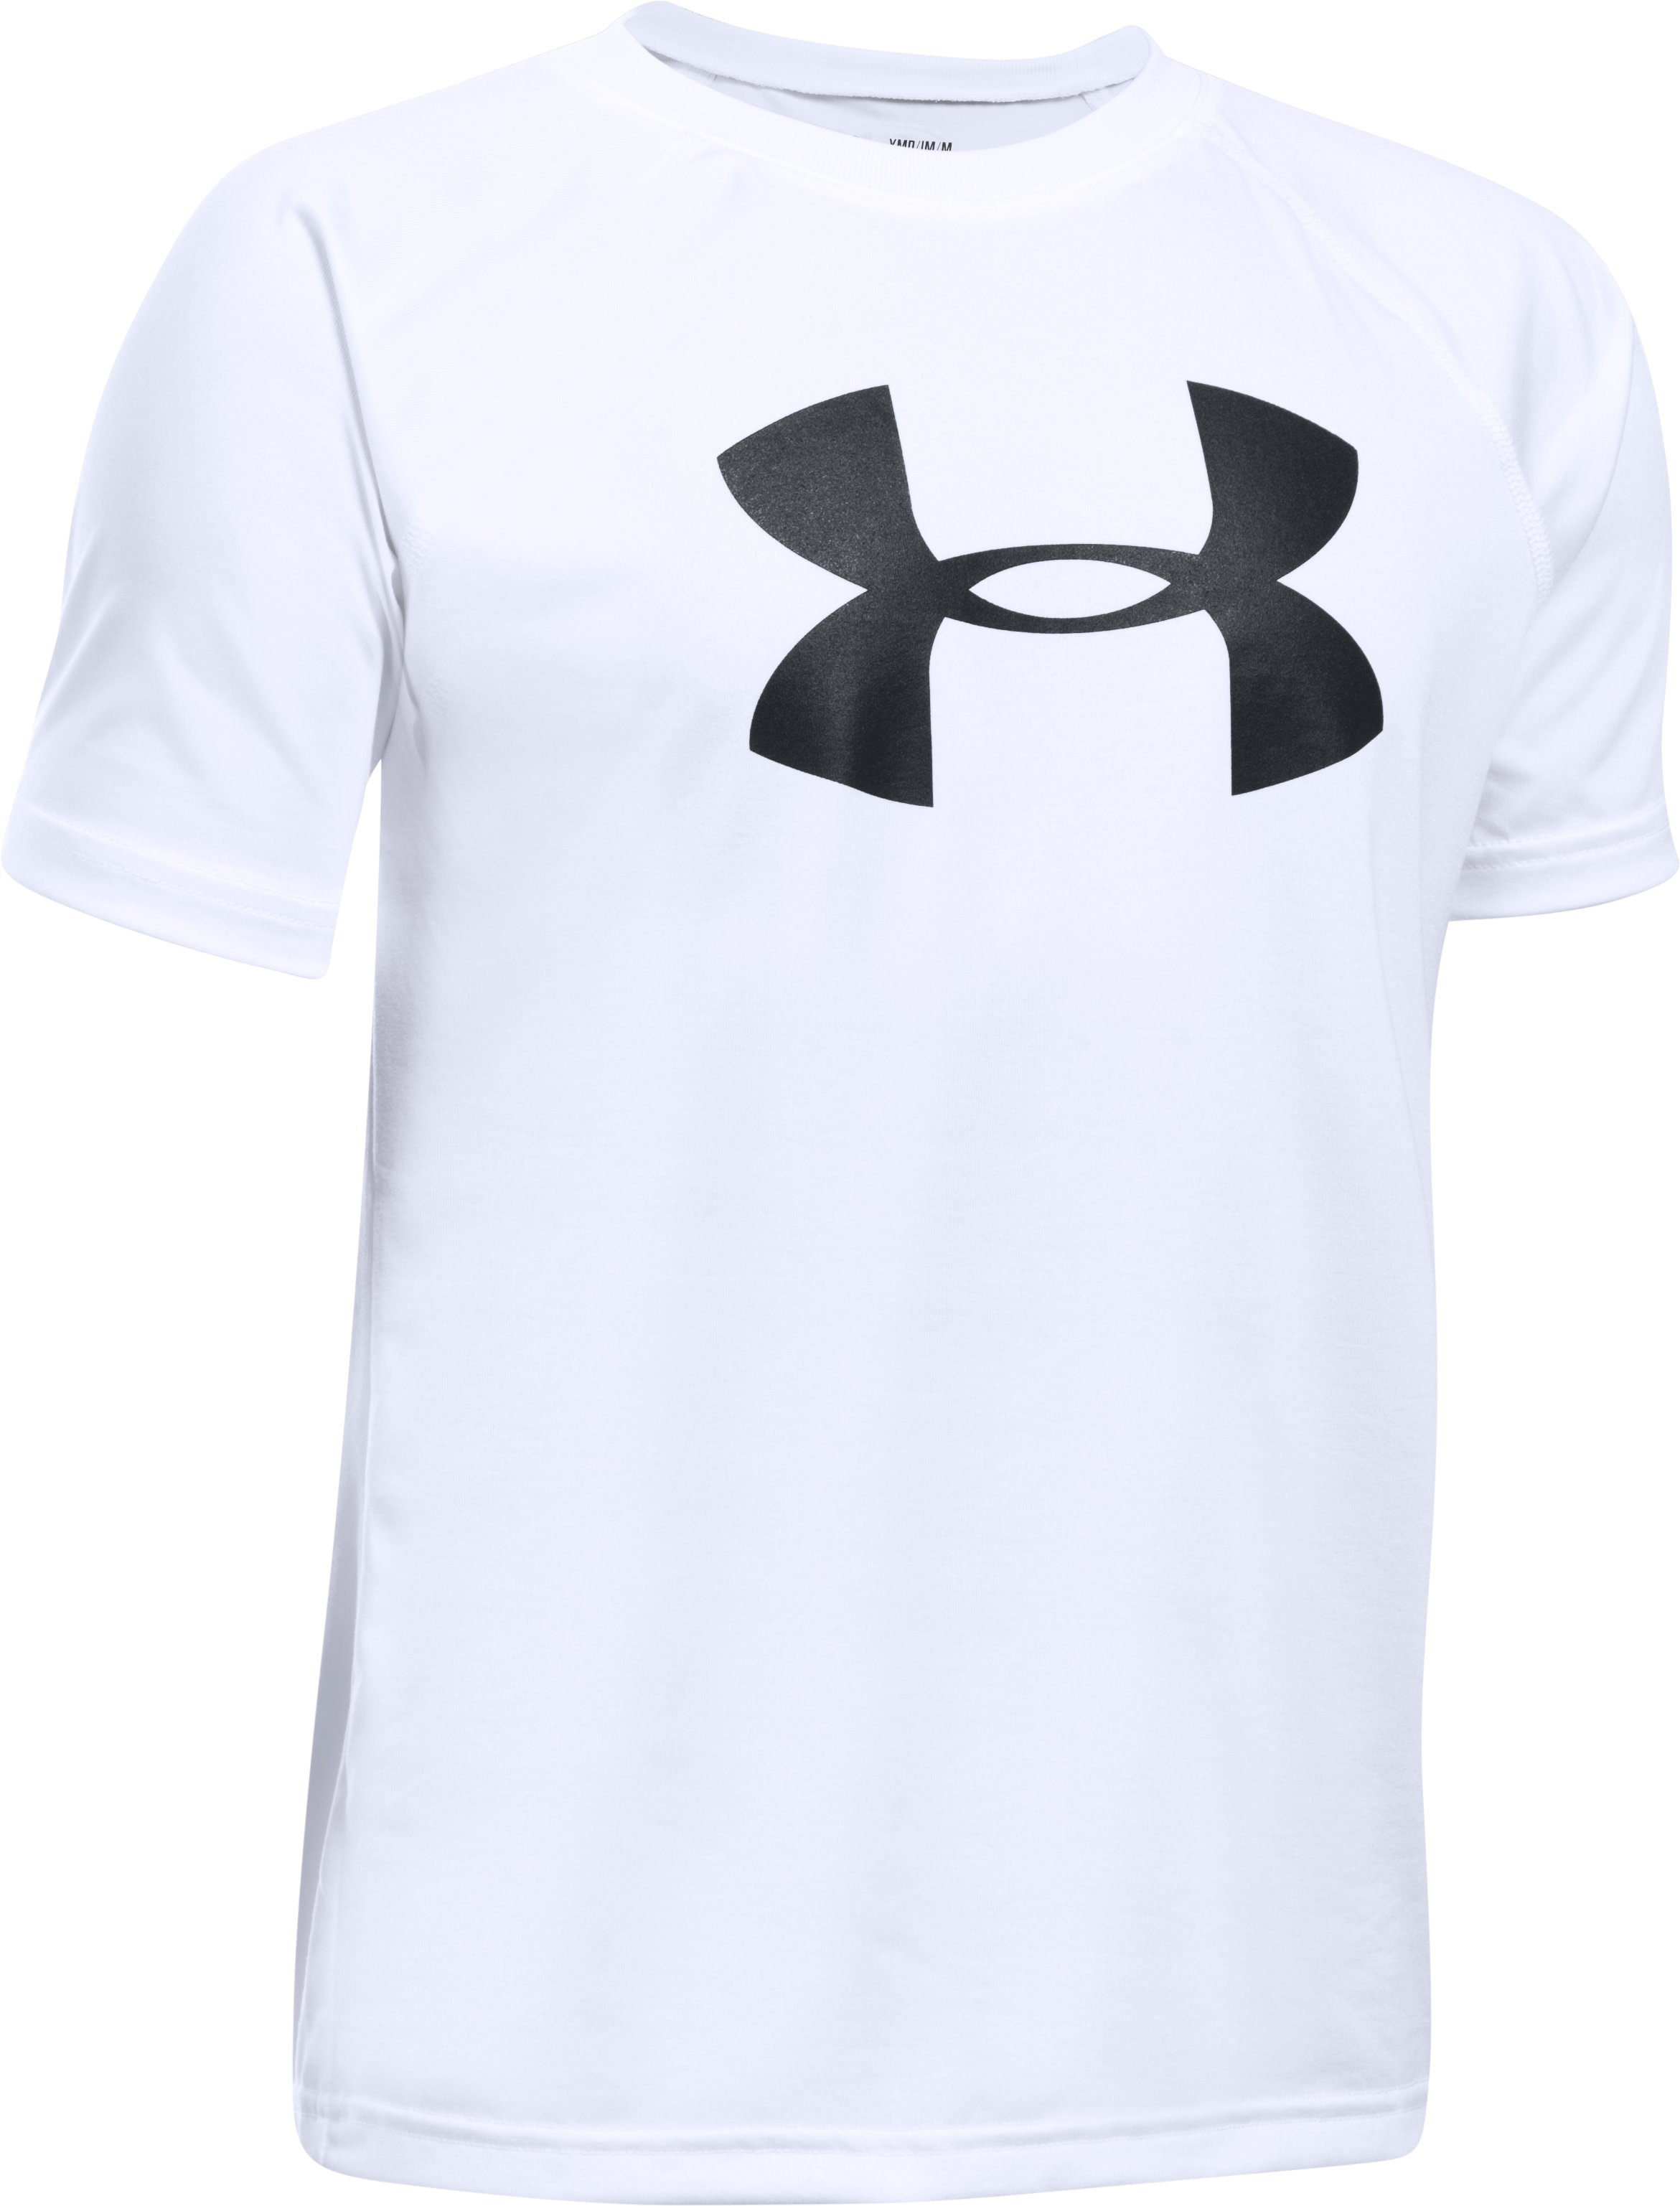 Boys' UA Tech™ Big Logo Short Sleeve T-Shirt, White